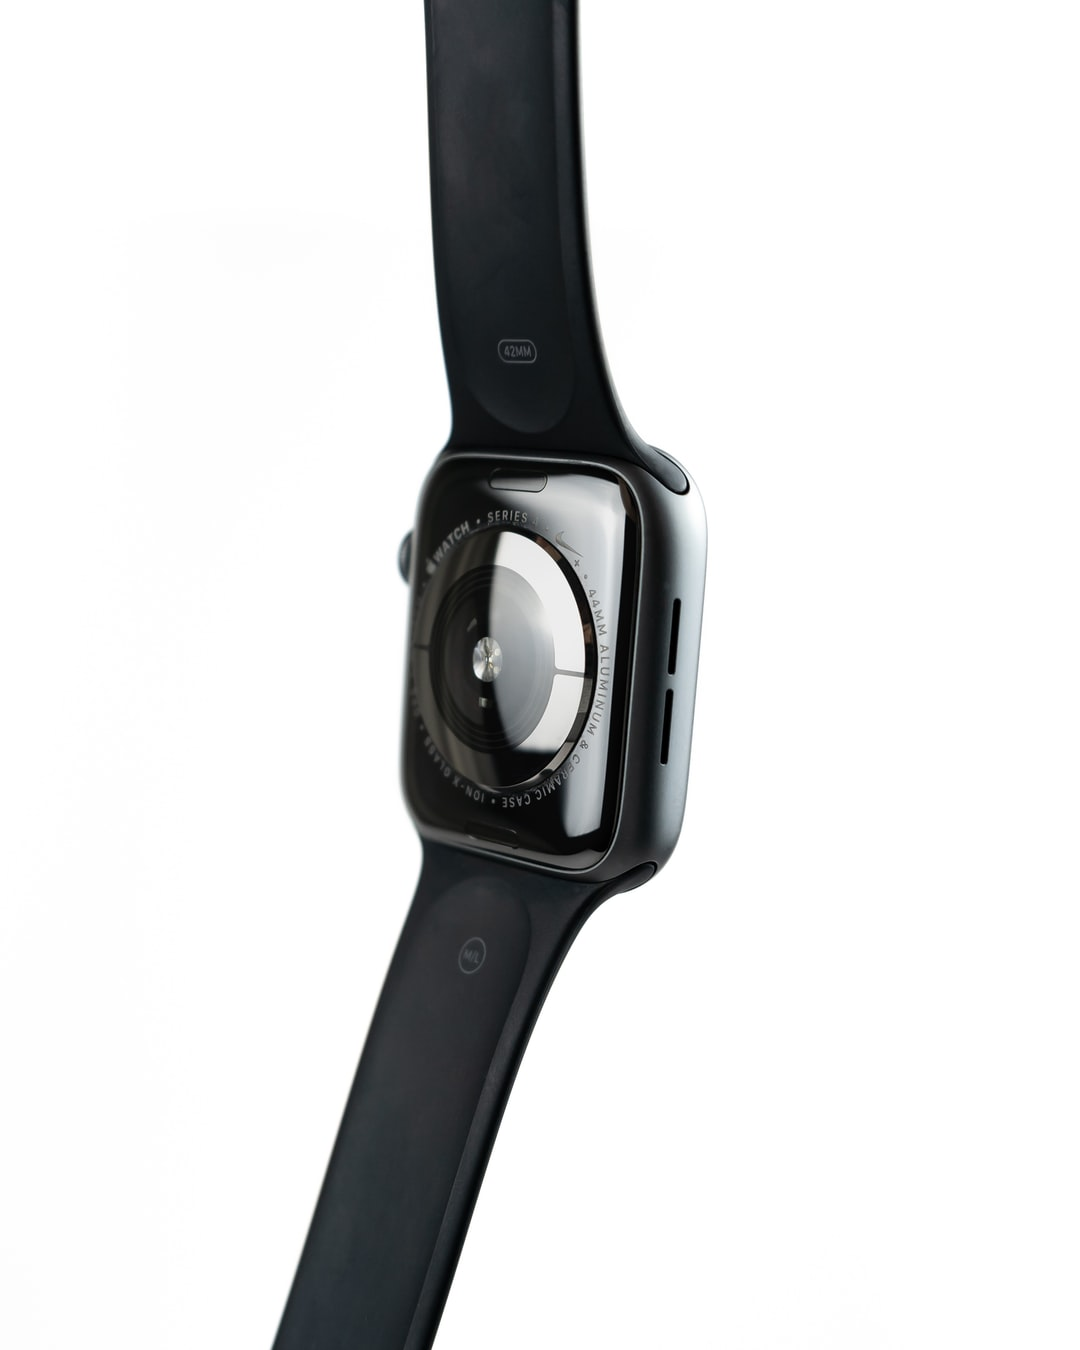 Apple Watch Series 5 Release Date, Price & Specs: Latest